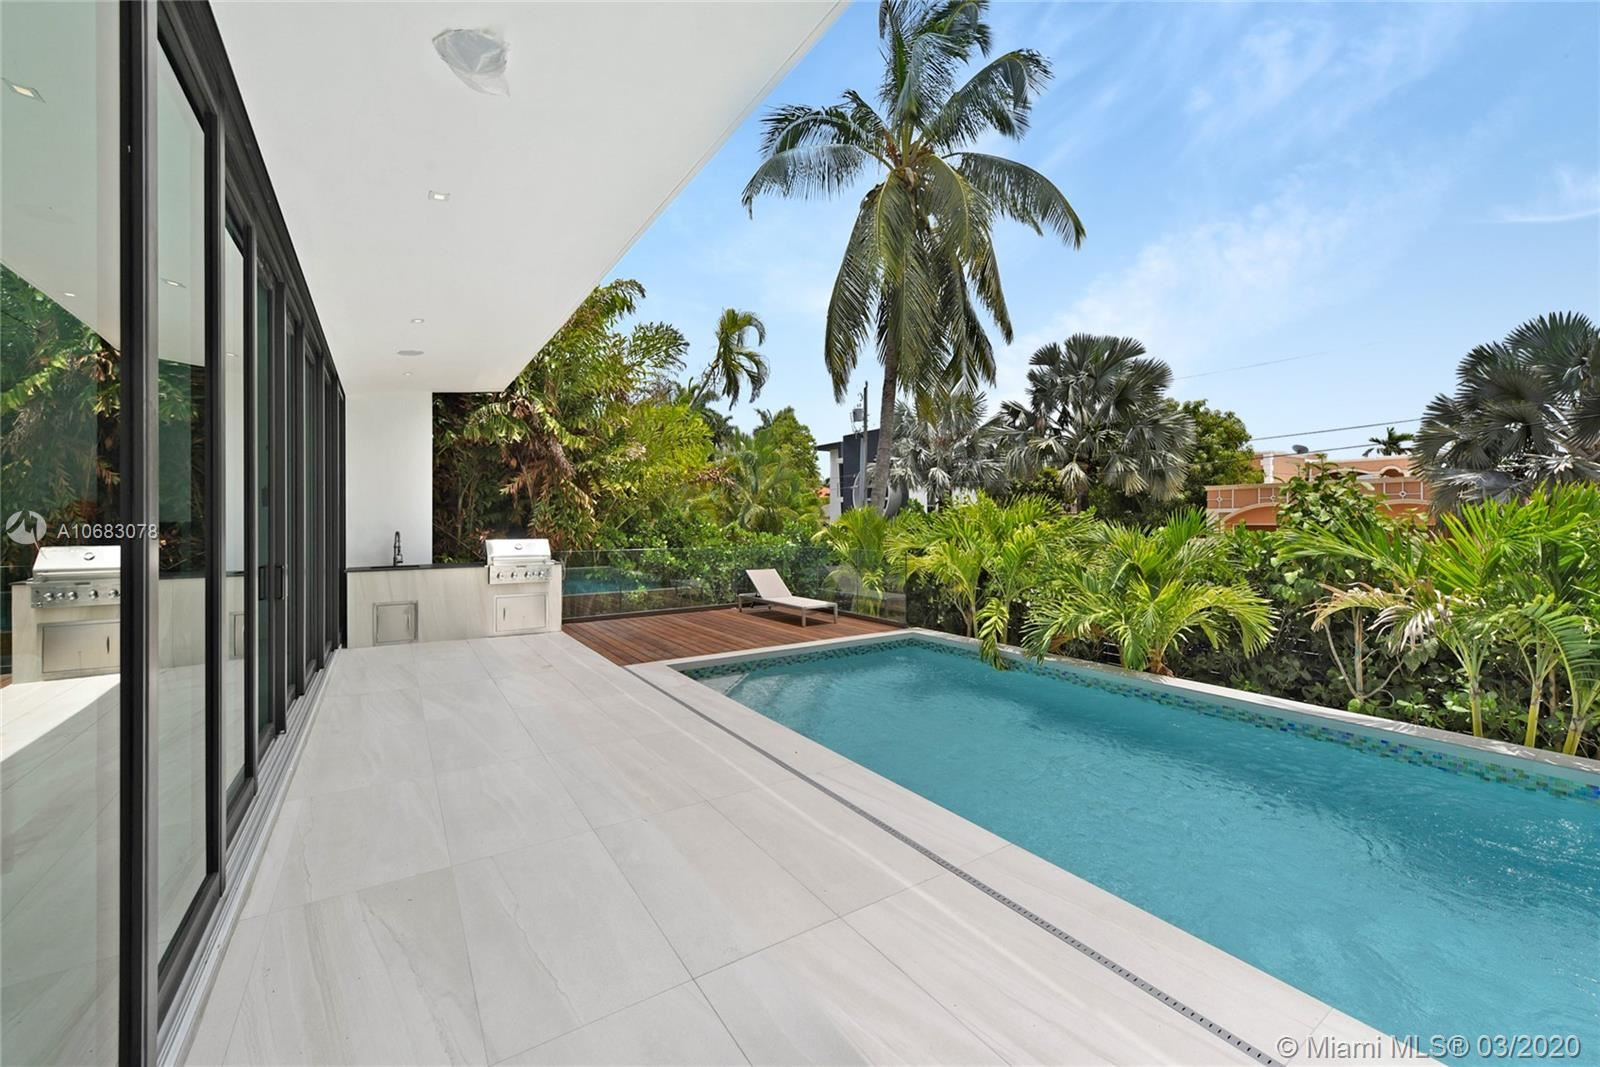 Photo 13 of Listing MLS a10683078 in 272 Palm Ave Miami Beach FL 33139